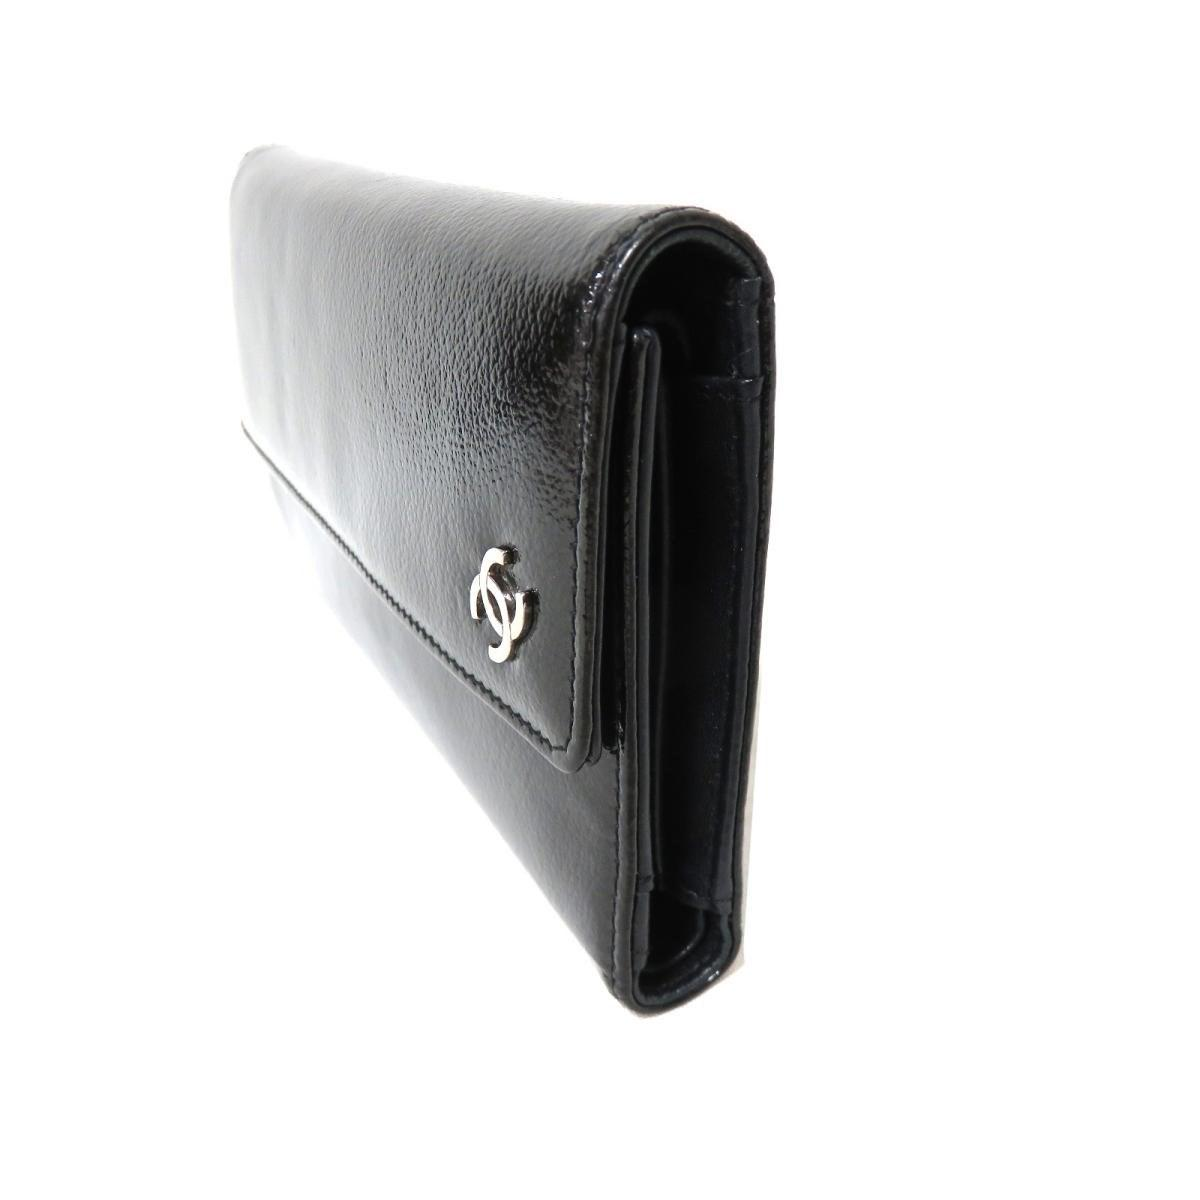 1bf443d137a533 Chanel - Authentic Trifold Wallet Purse Enamel Black Used Vintage - Lyst.  View fullscreen